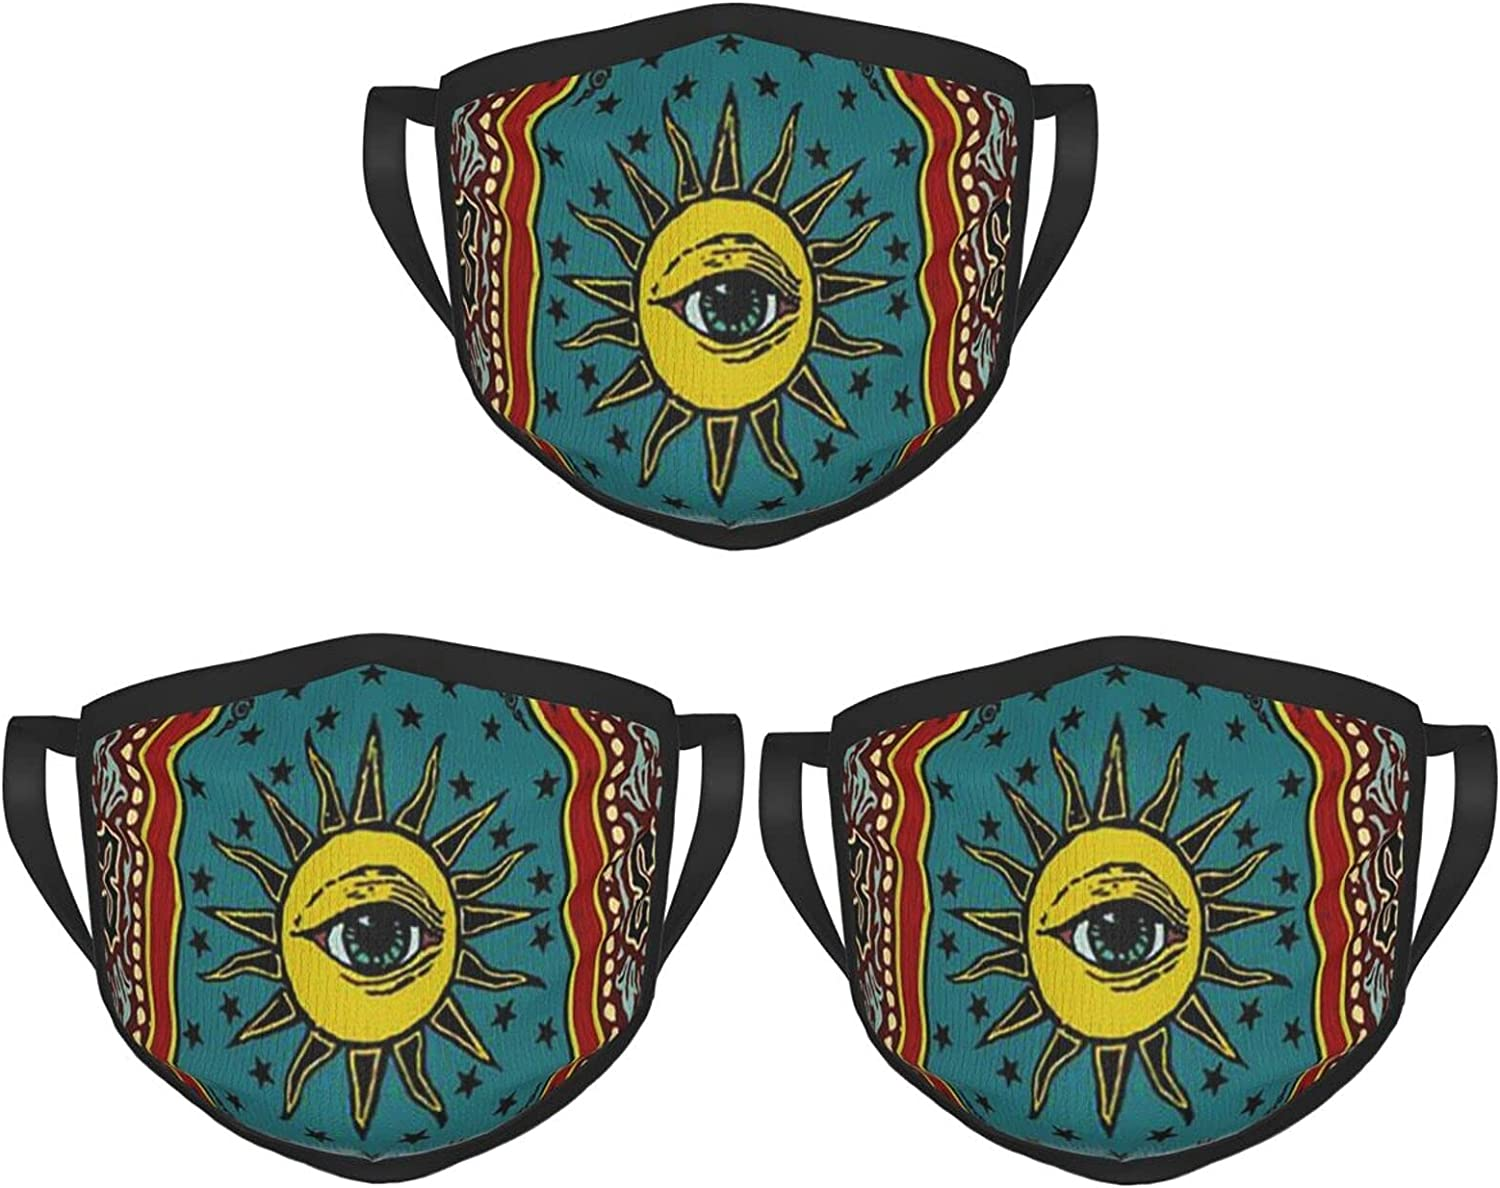 Balaclava Earmuffs Psychedelic Hippie Tarot Luck Fate Sun Eye Face Mouth Cover Mask Reusable Windproof Scarf Towel Cover Headwrap